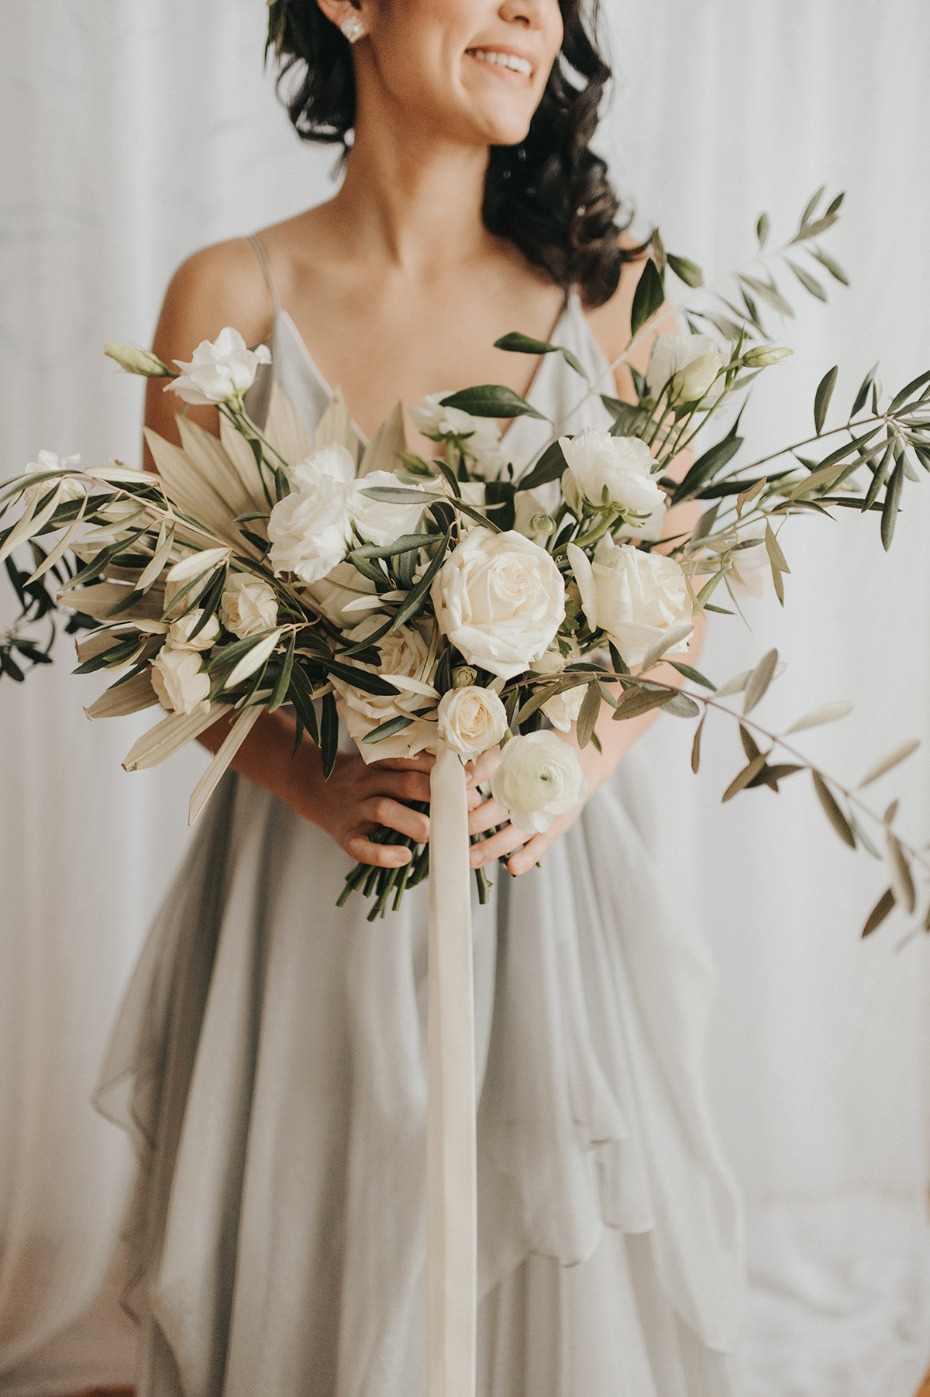 olive branch and white rose wedding bouquet